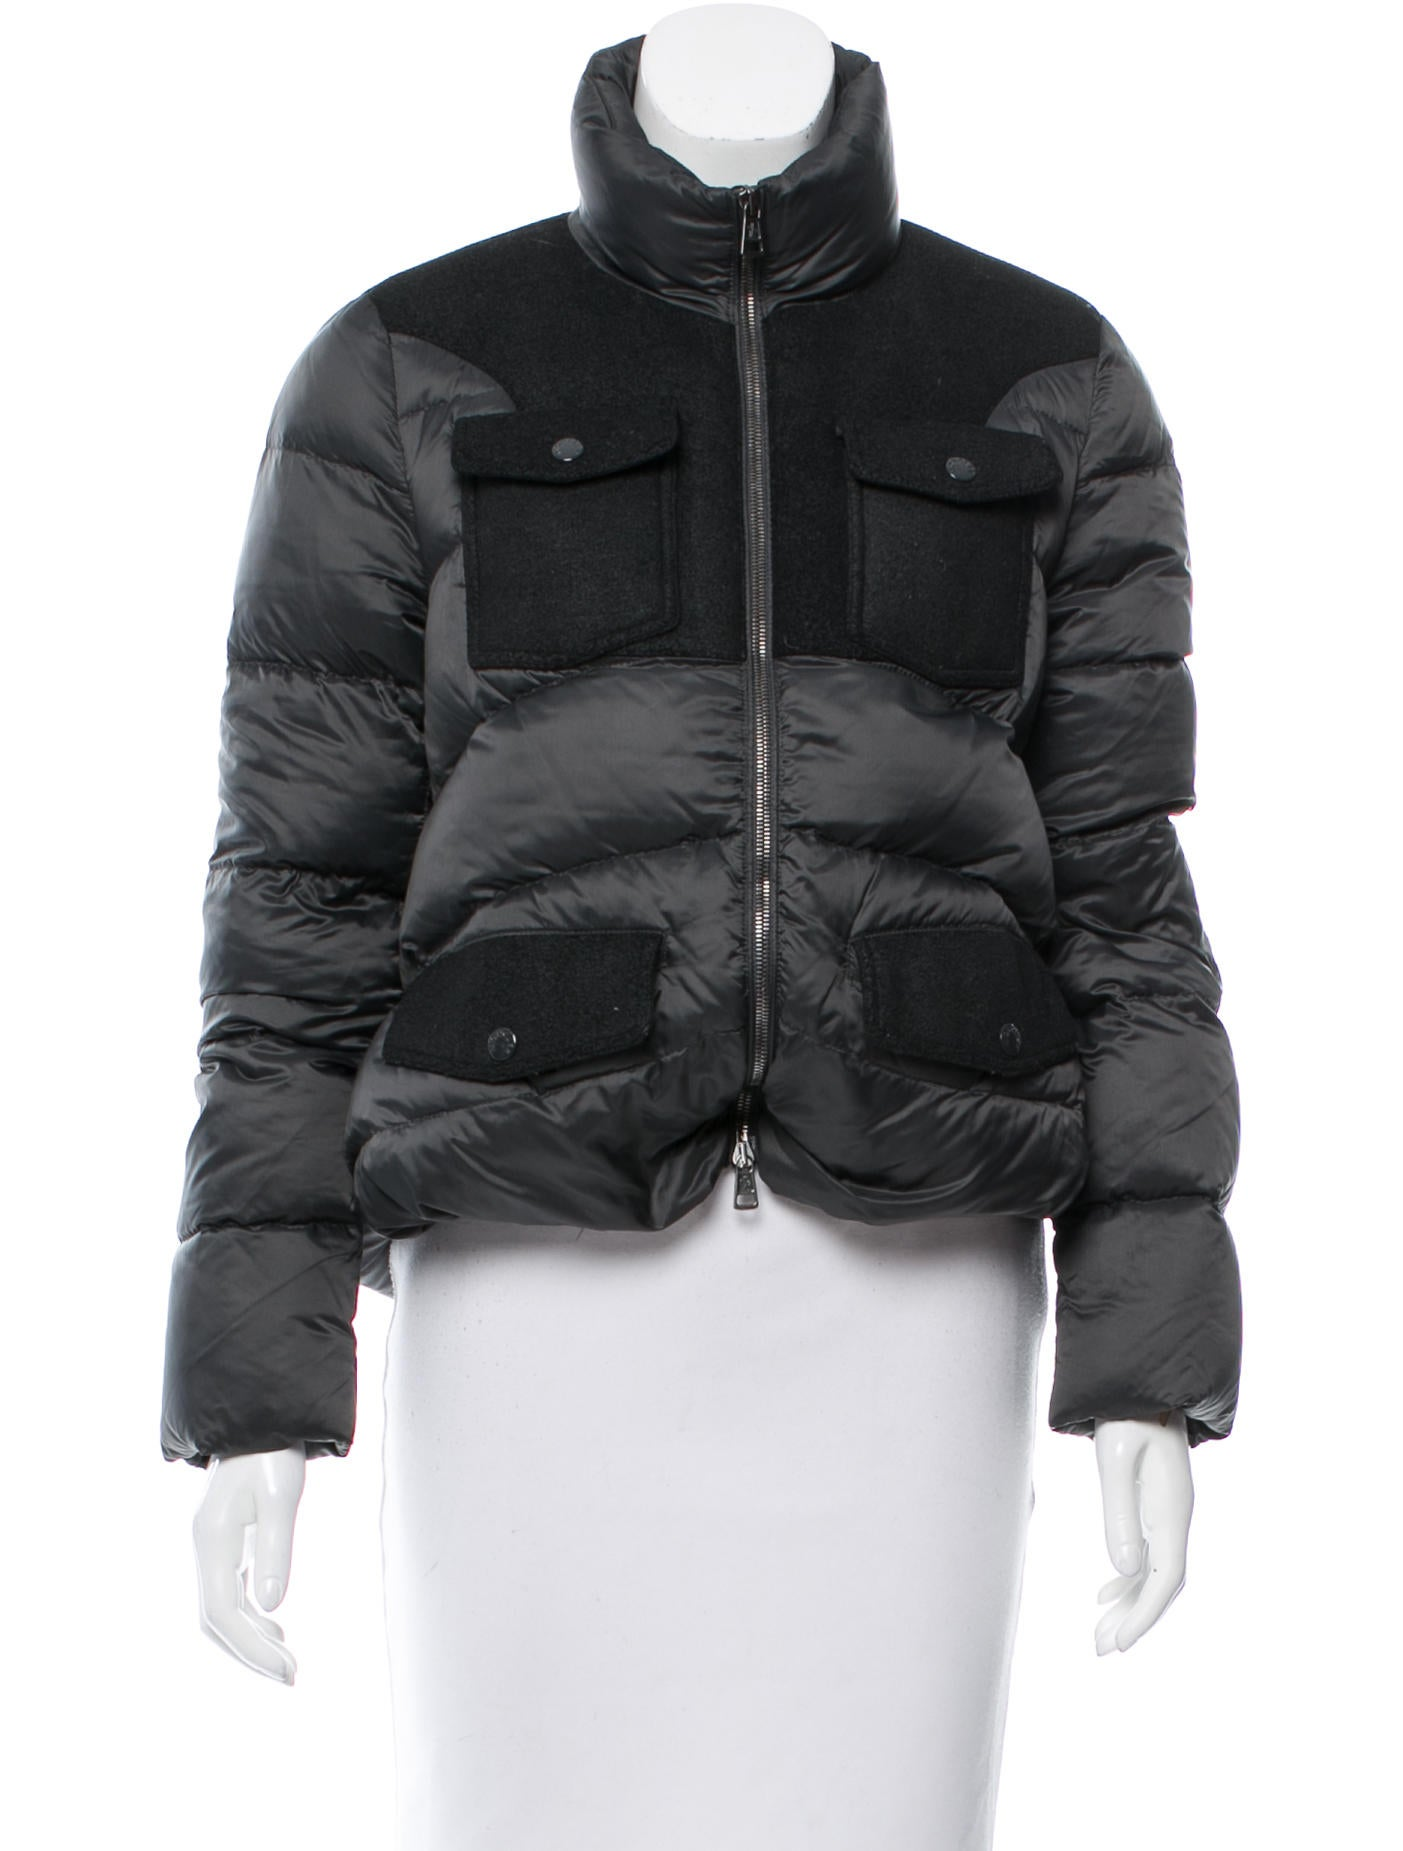 Womens Coats and Jackets. Lightweight down & fleece lined jackets, gilets & trench coats. Free delivery over £60 spend.